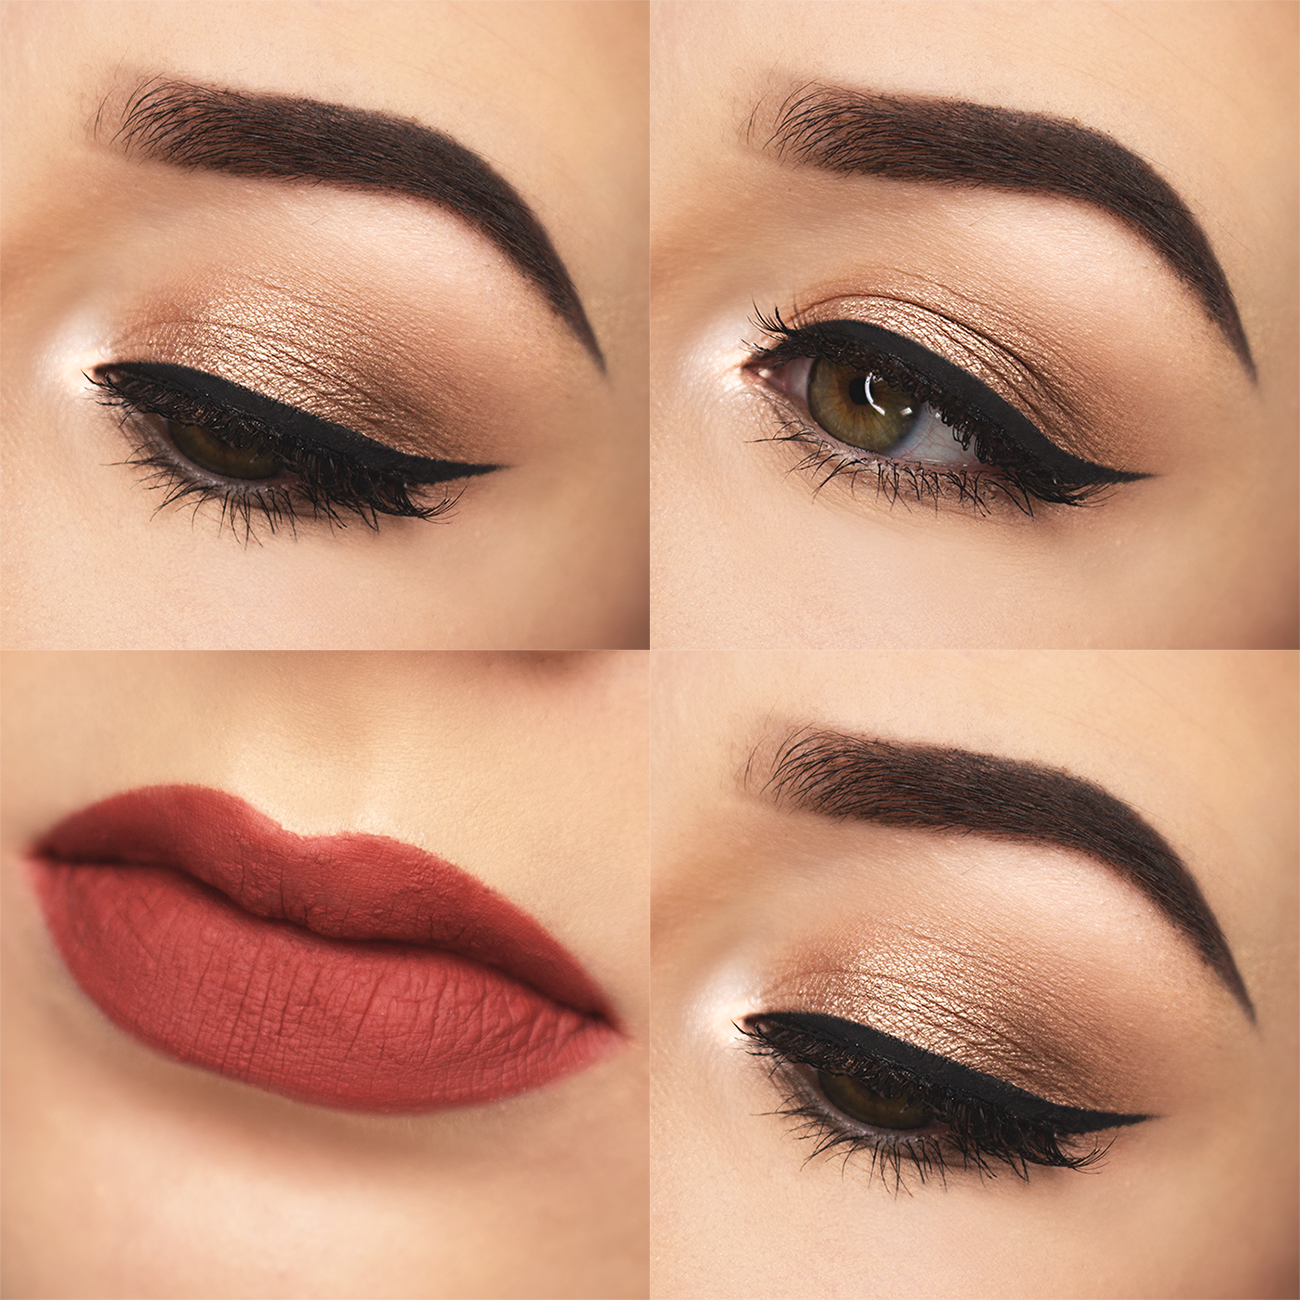 Champagne Eyes Terracotta Lips Just Little Things Red Lip Makeup Red Dress Makeup Eye Makeup [ 1300 x 1300 Pixel ]